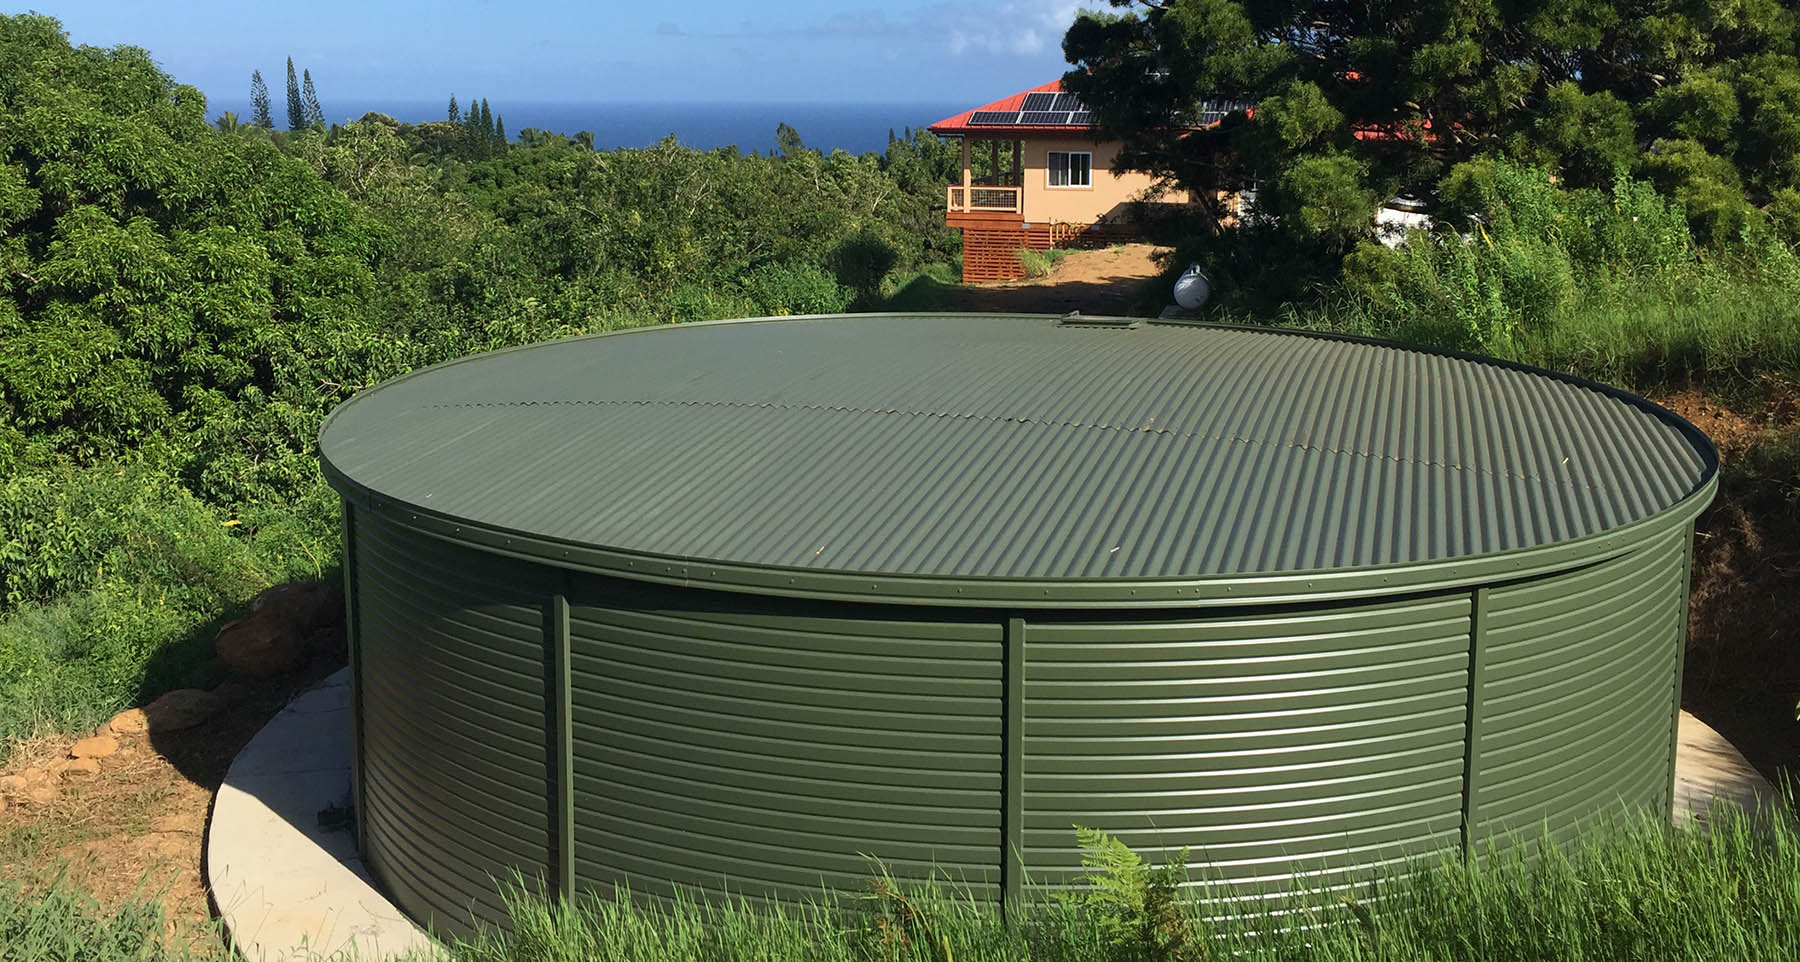 4 Benefits Of Water Tanks Amp Rainwater Catchment Systems